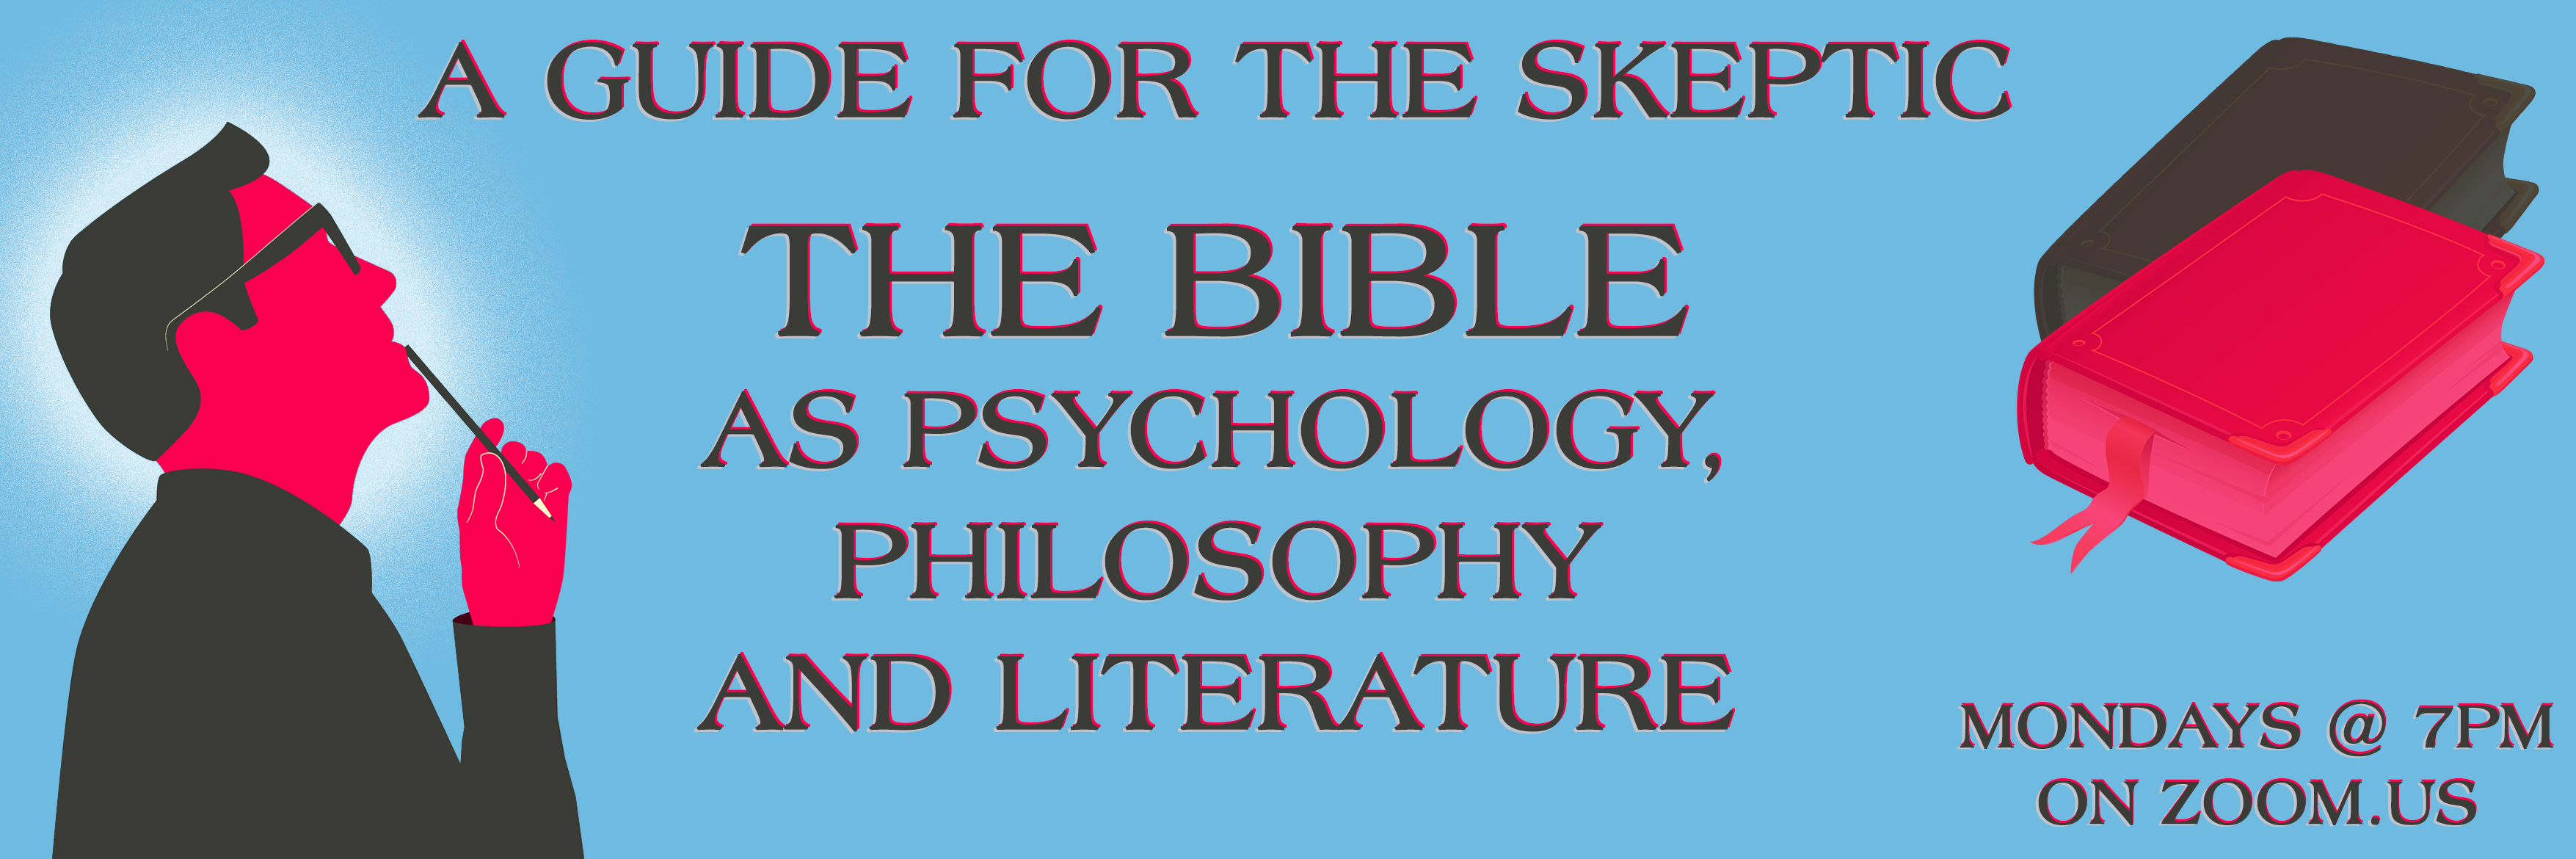 Banner Image for The Bible as Psychology, Philosophy and Literature